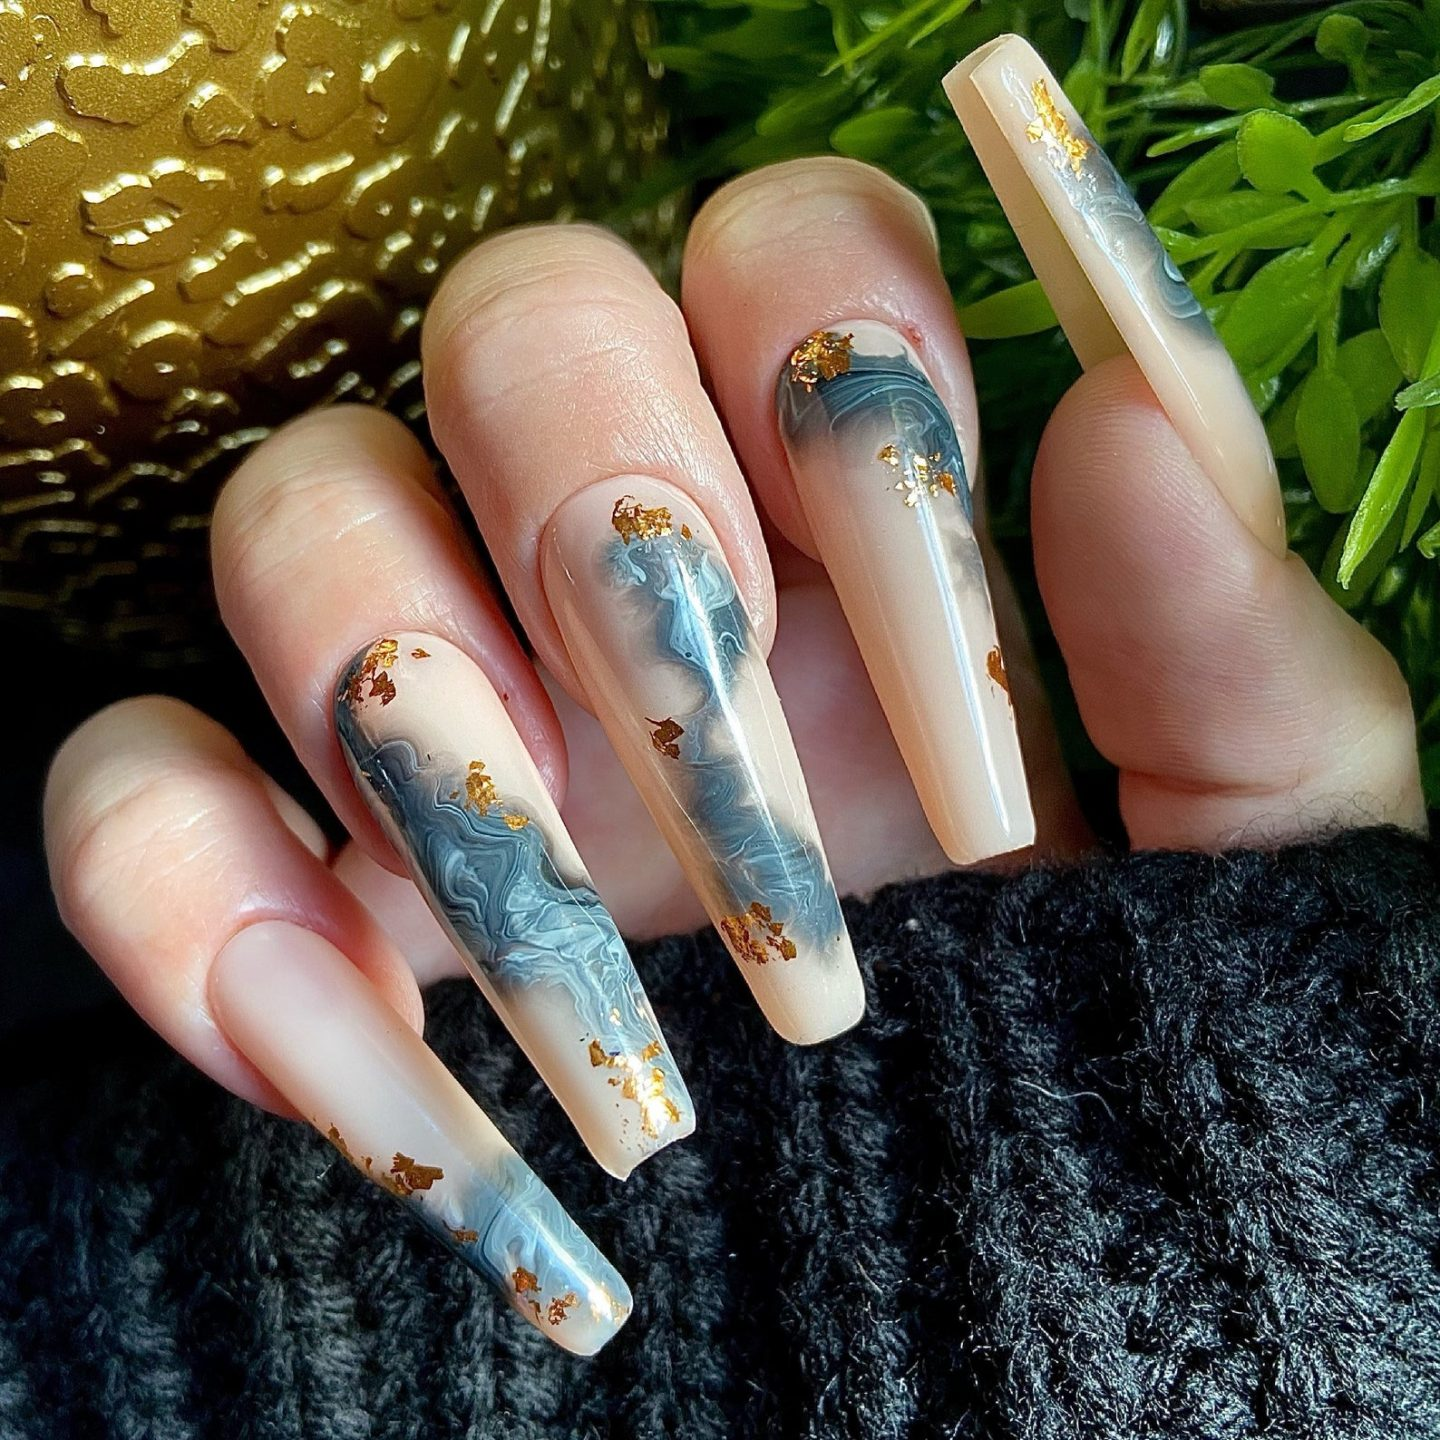 Nude and grey marble nails with gold flakes